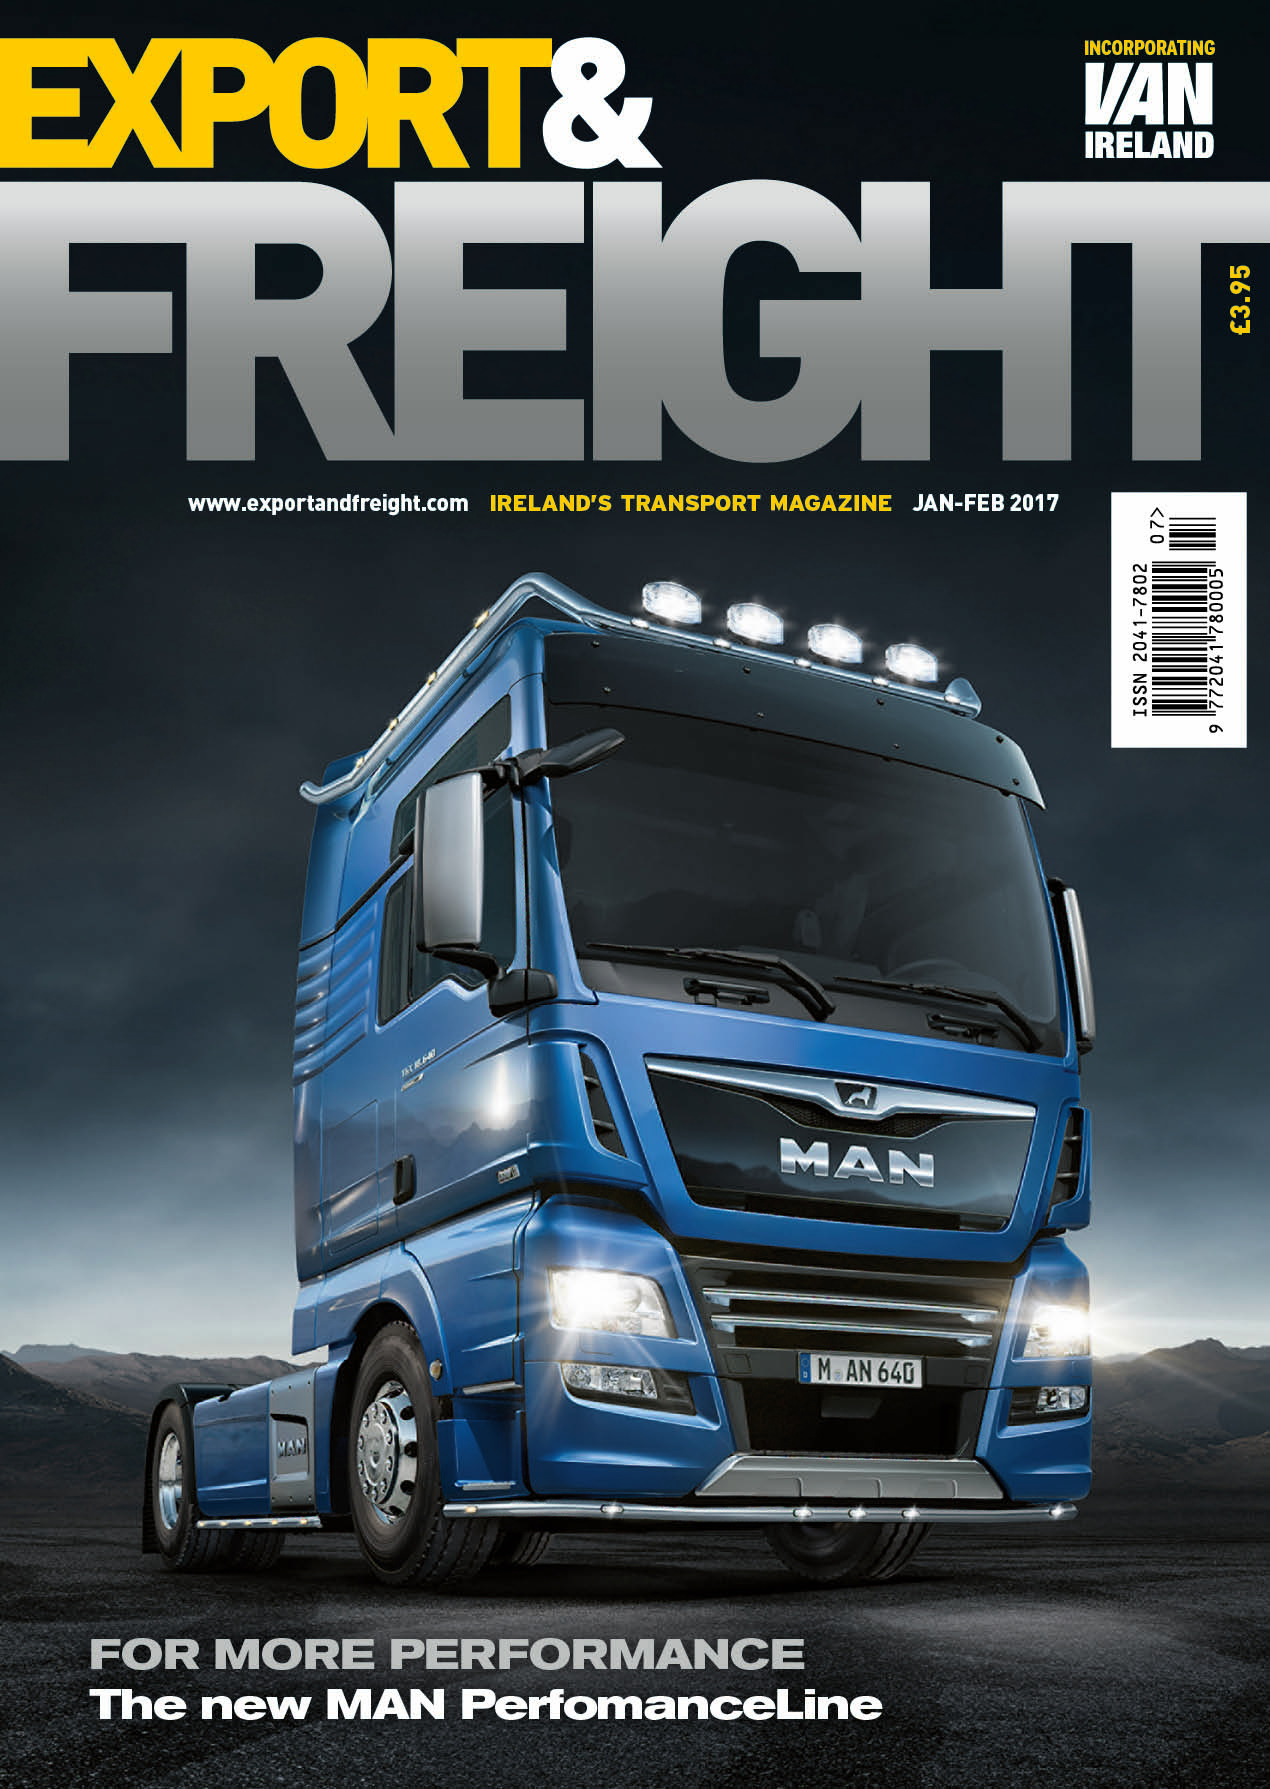 Man front cover fp ad export and freight man front cover fp ad publicscrutiny Gallery